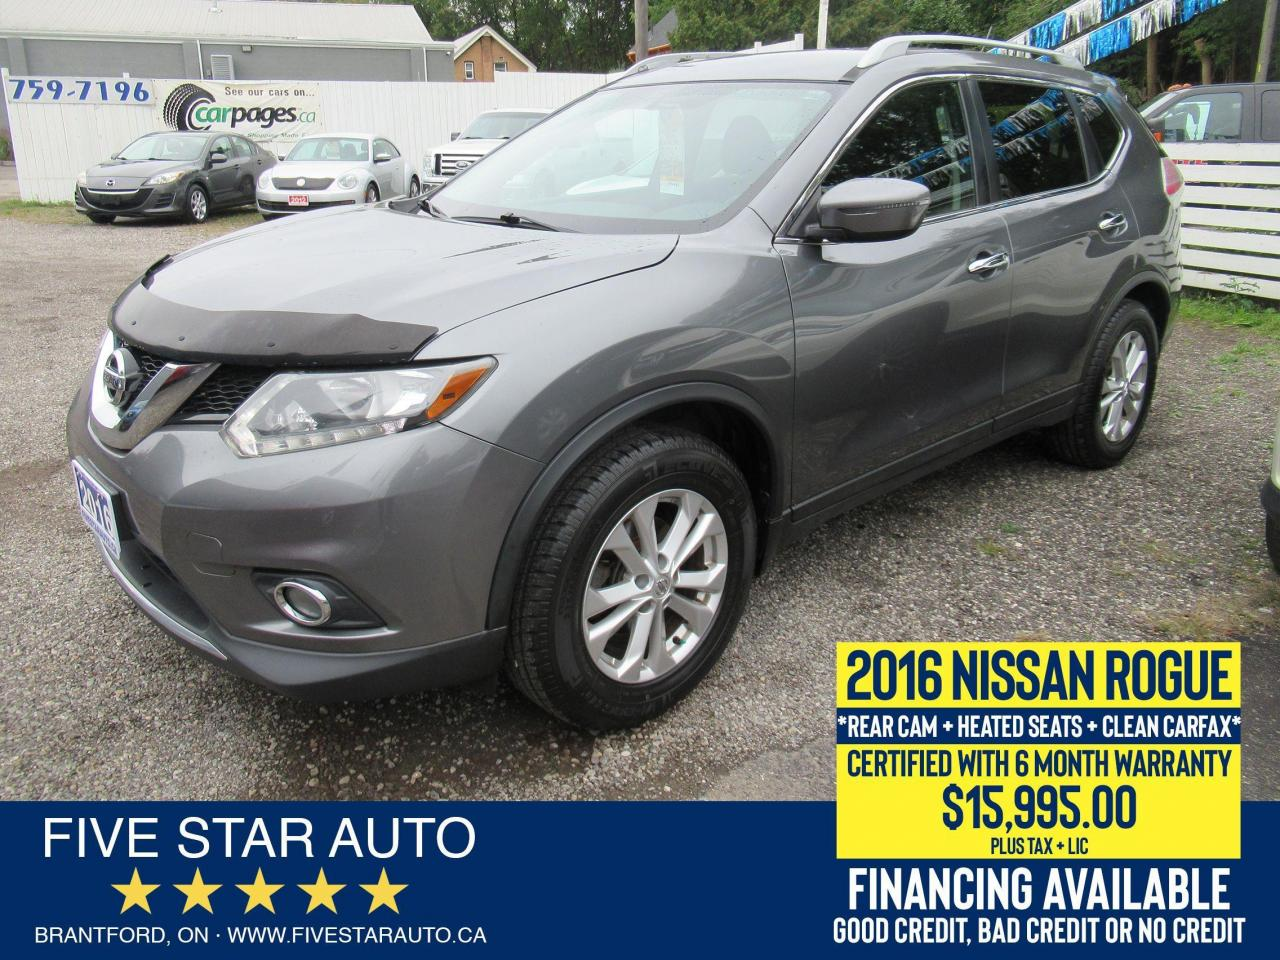 2016 Nissan Rogue SV *Clean Carfax* Certified w/ 6 Month Warranty